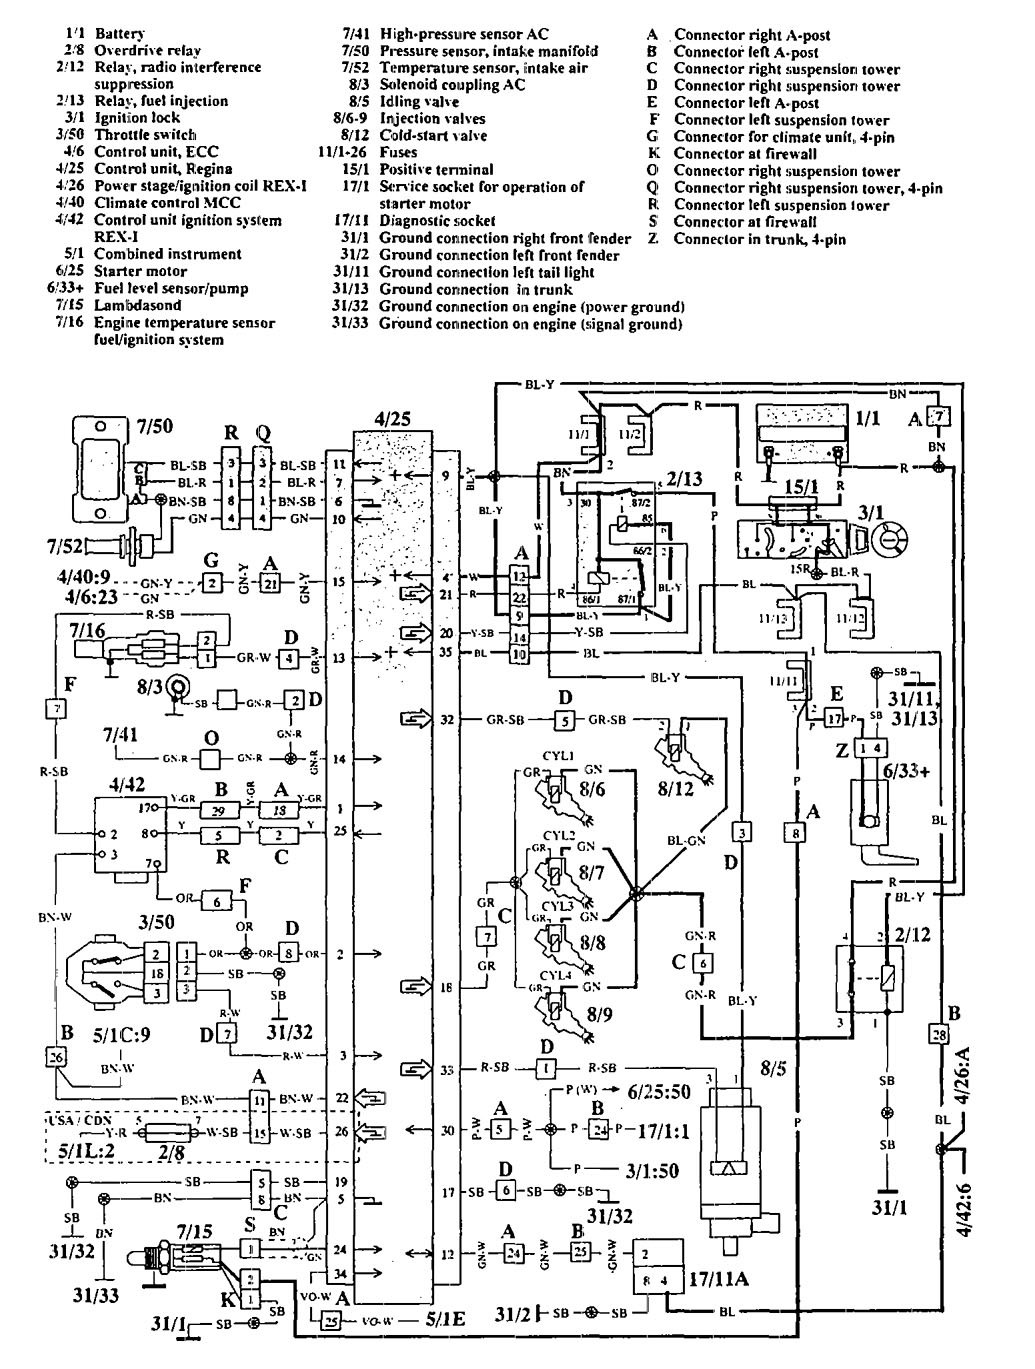 hight resolution of volvo 940 electrical diagram wiring diagram online rh 2 51 shareplm de 1991 volvo 240 tail light wiring diagram 1993 volvo 940 ignition module